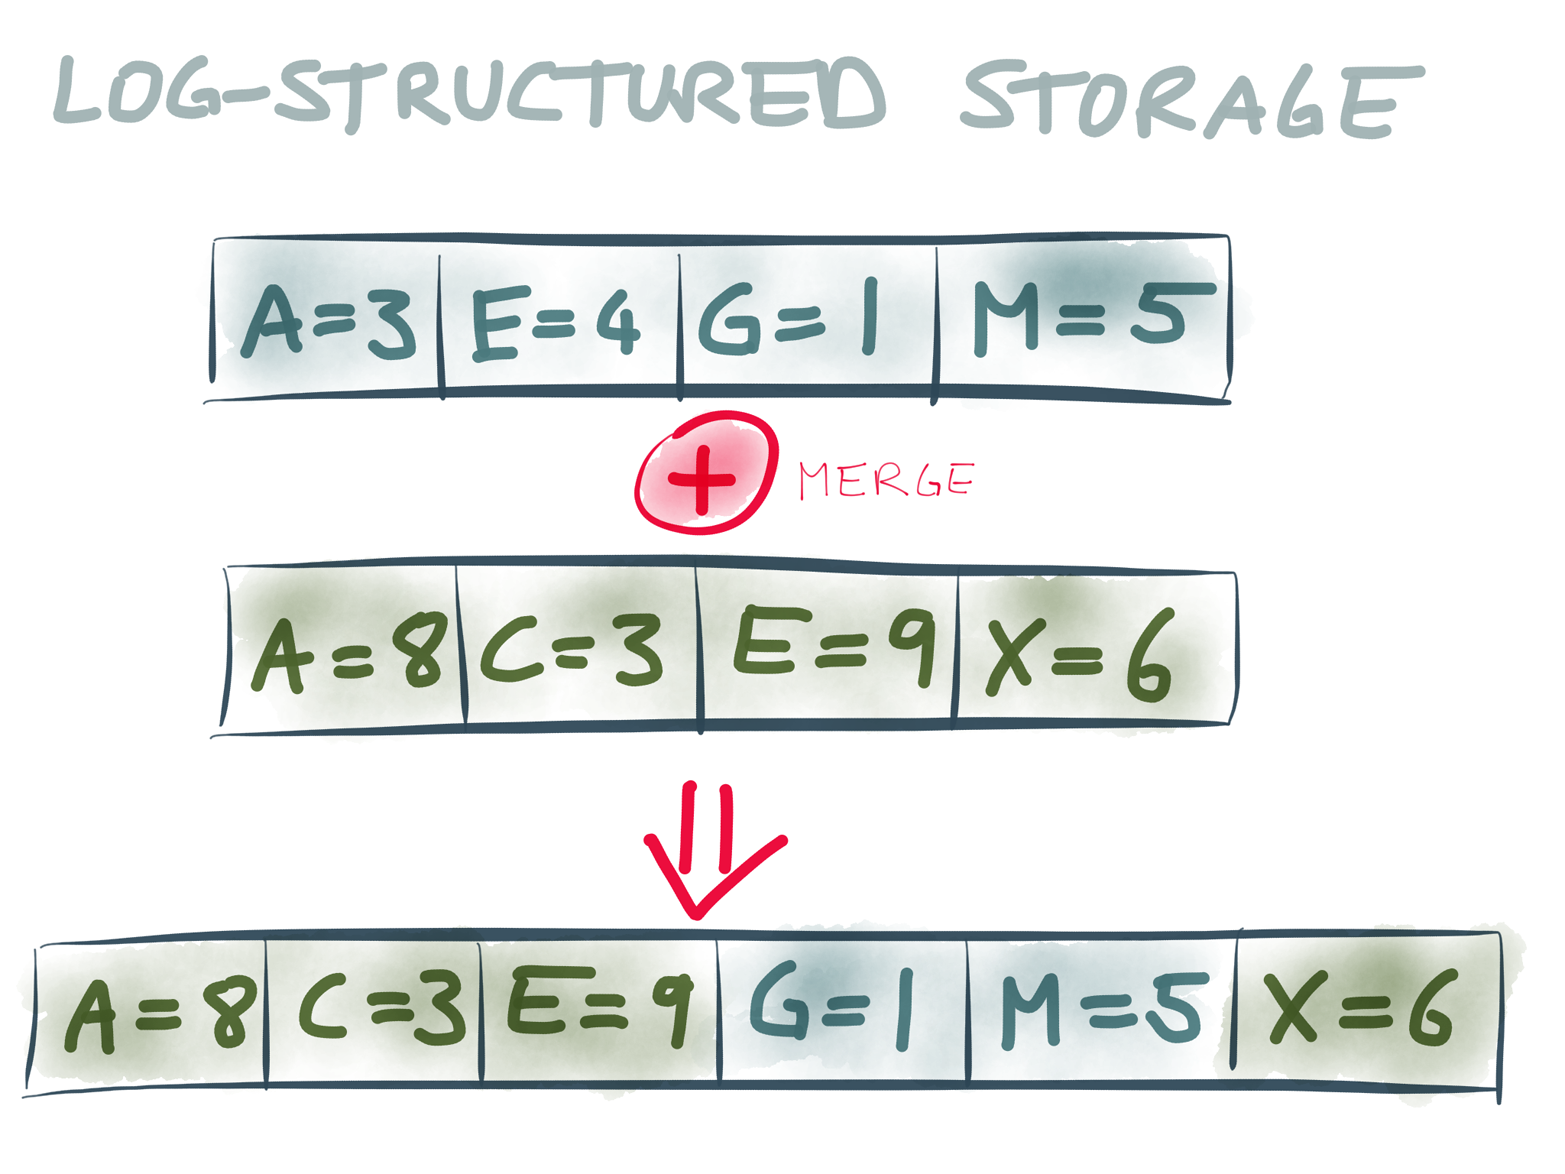 In log-structured storage, writes are appended to log segments, and periodically merged/compacted in the background.